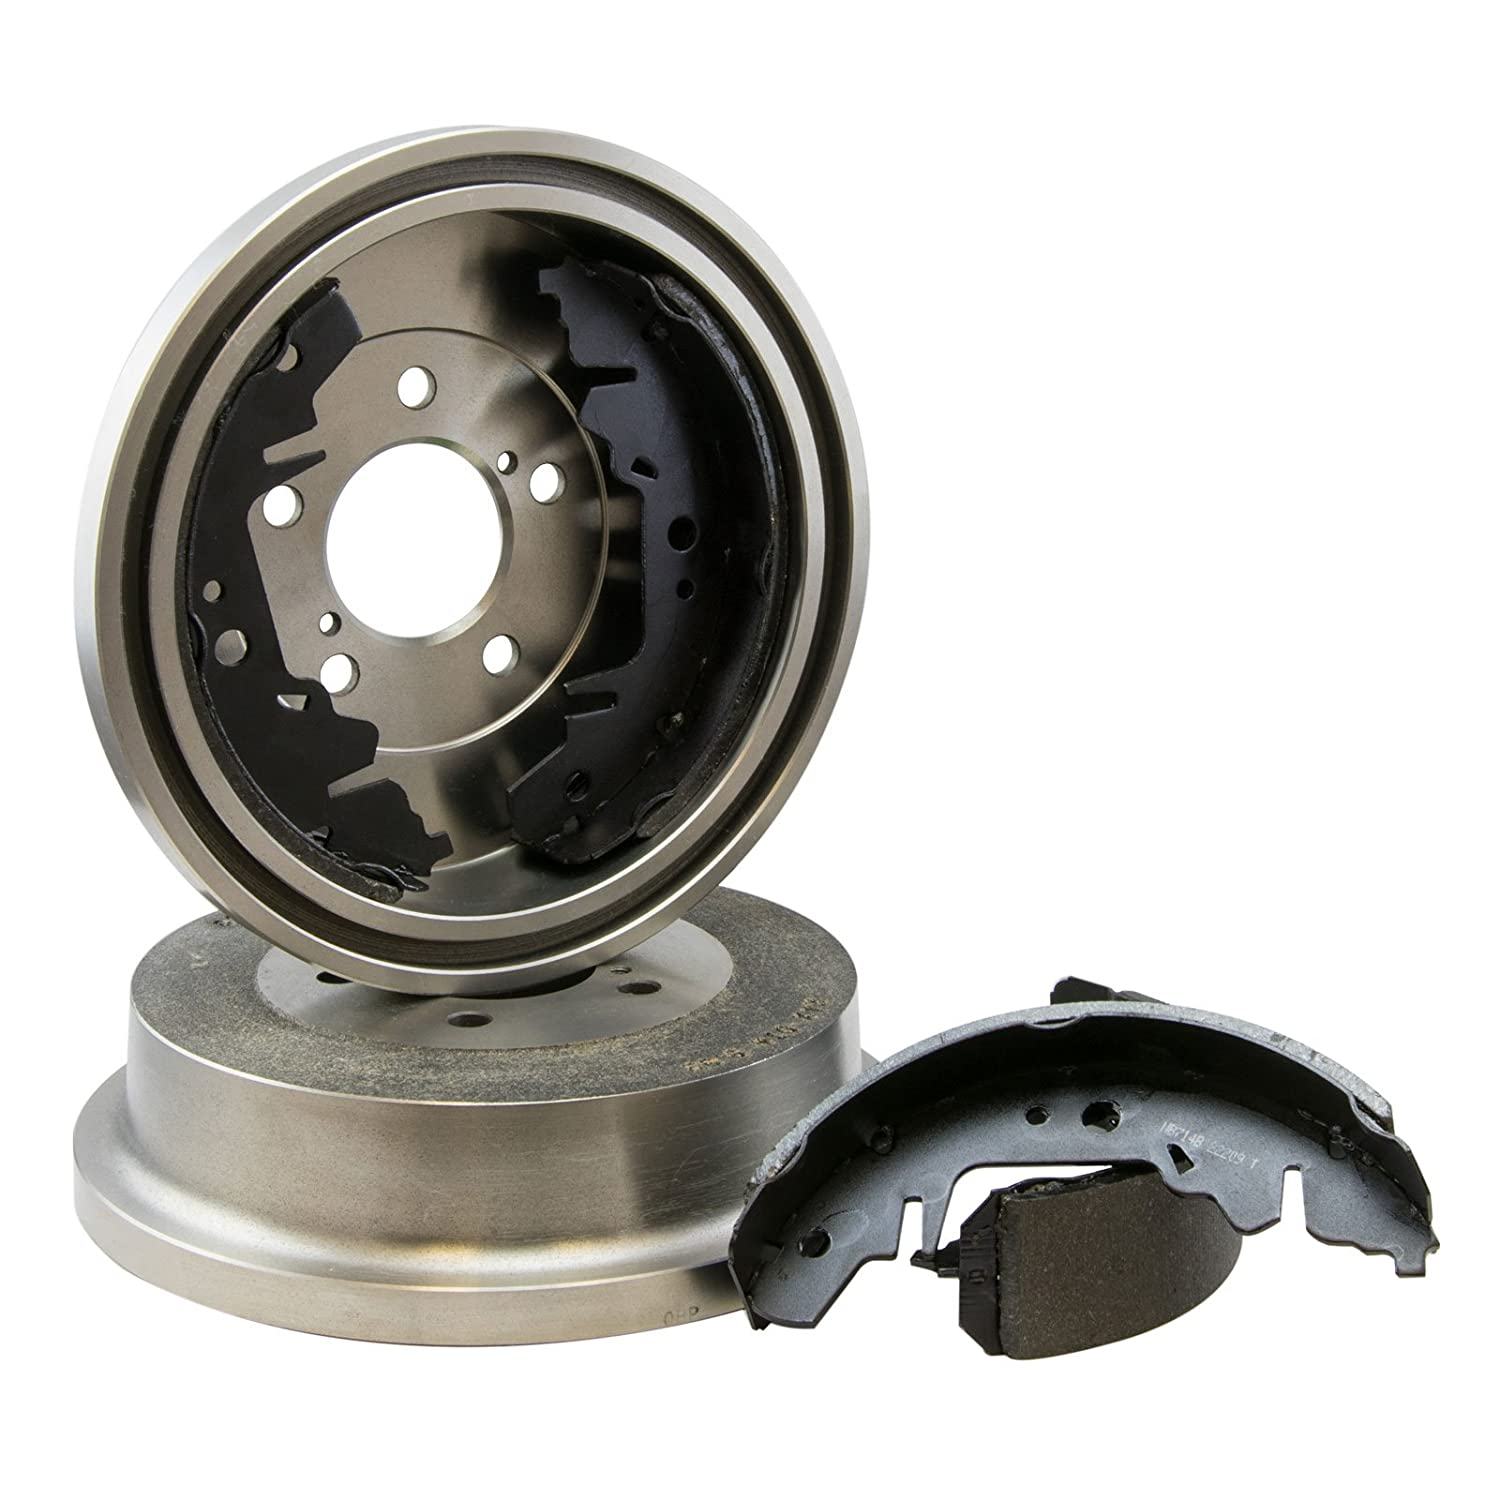 Max DS910842 Rear Premium OE Replacement Drums and Shoes Combo Brake Kit Max Advanced Brakes